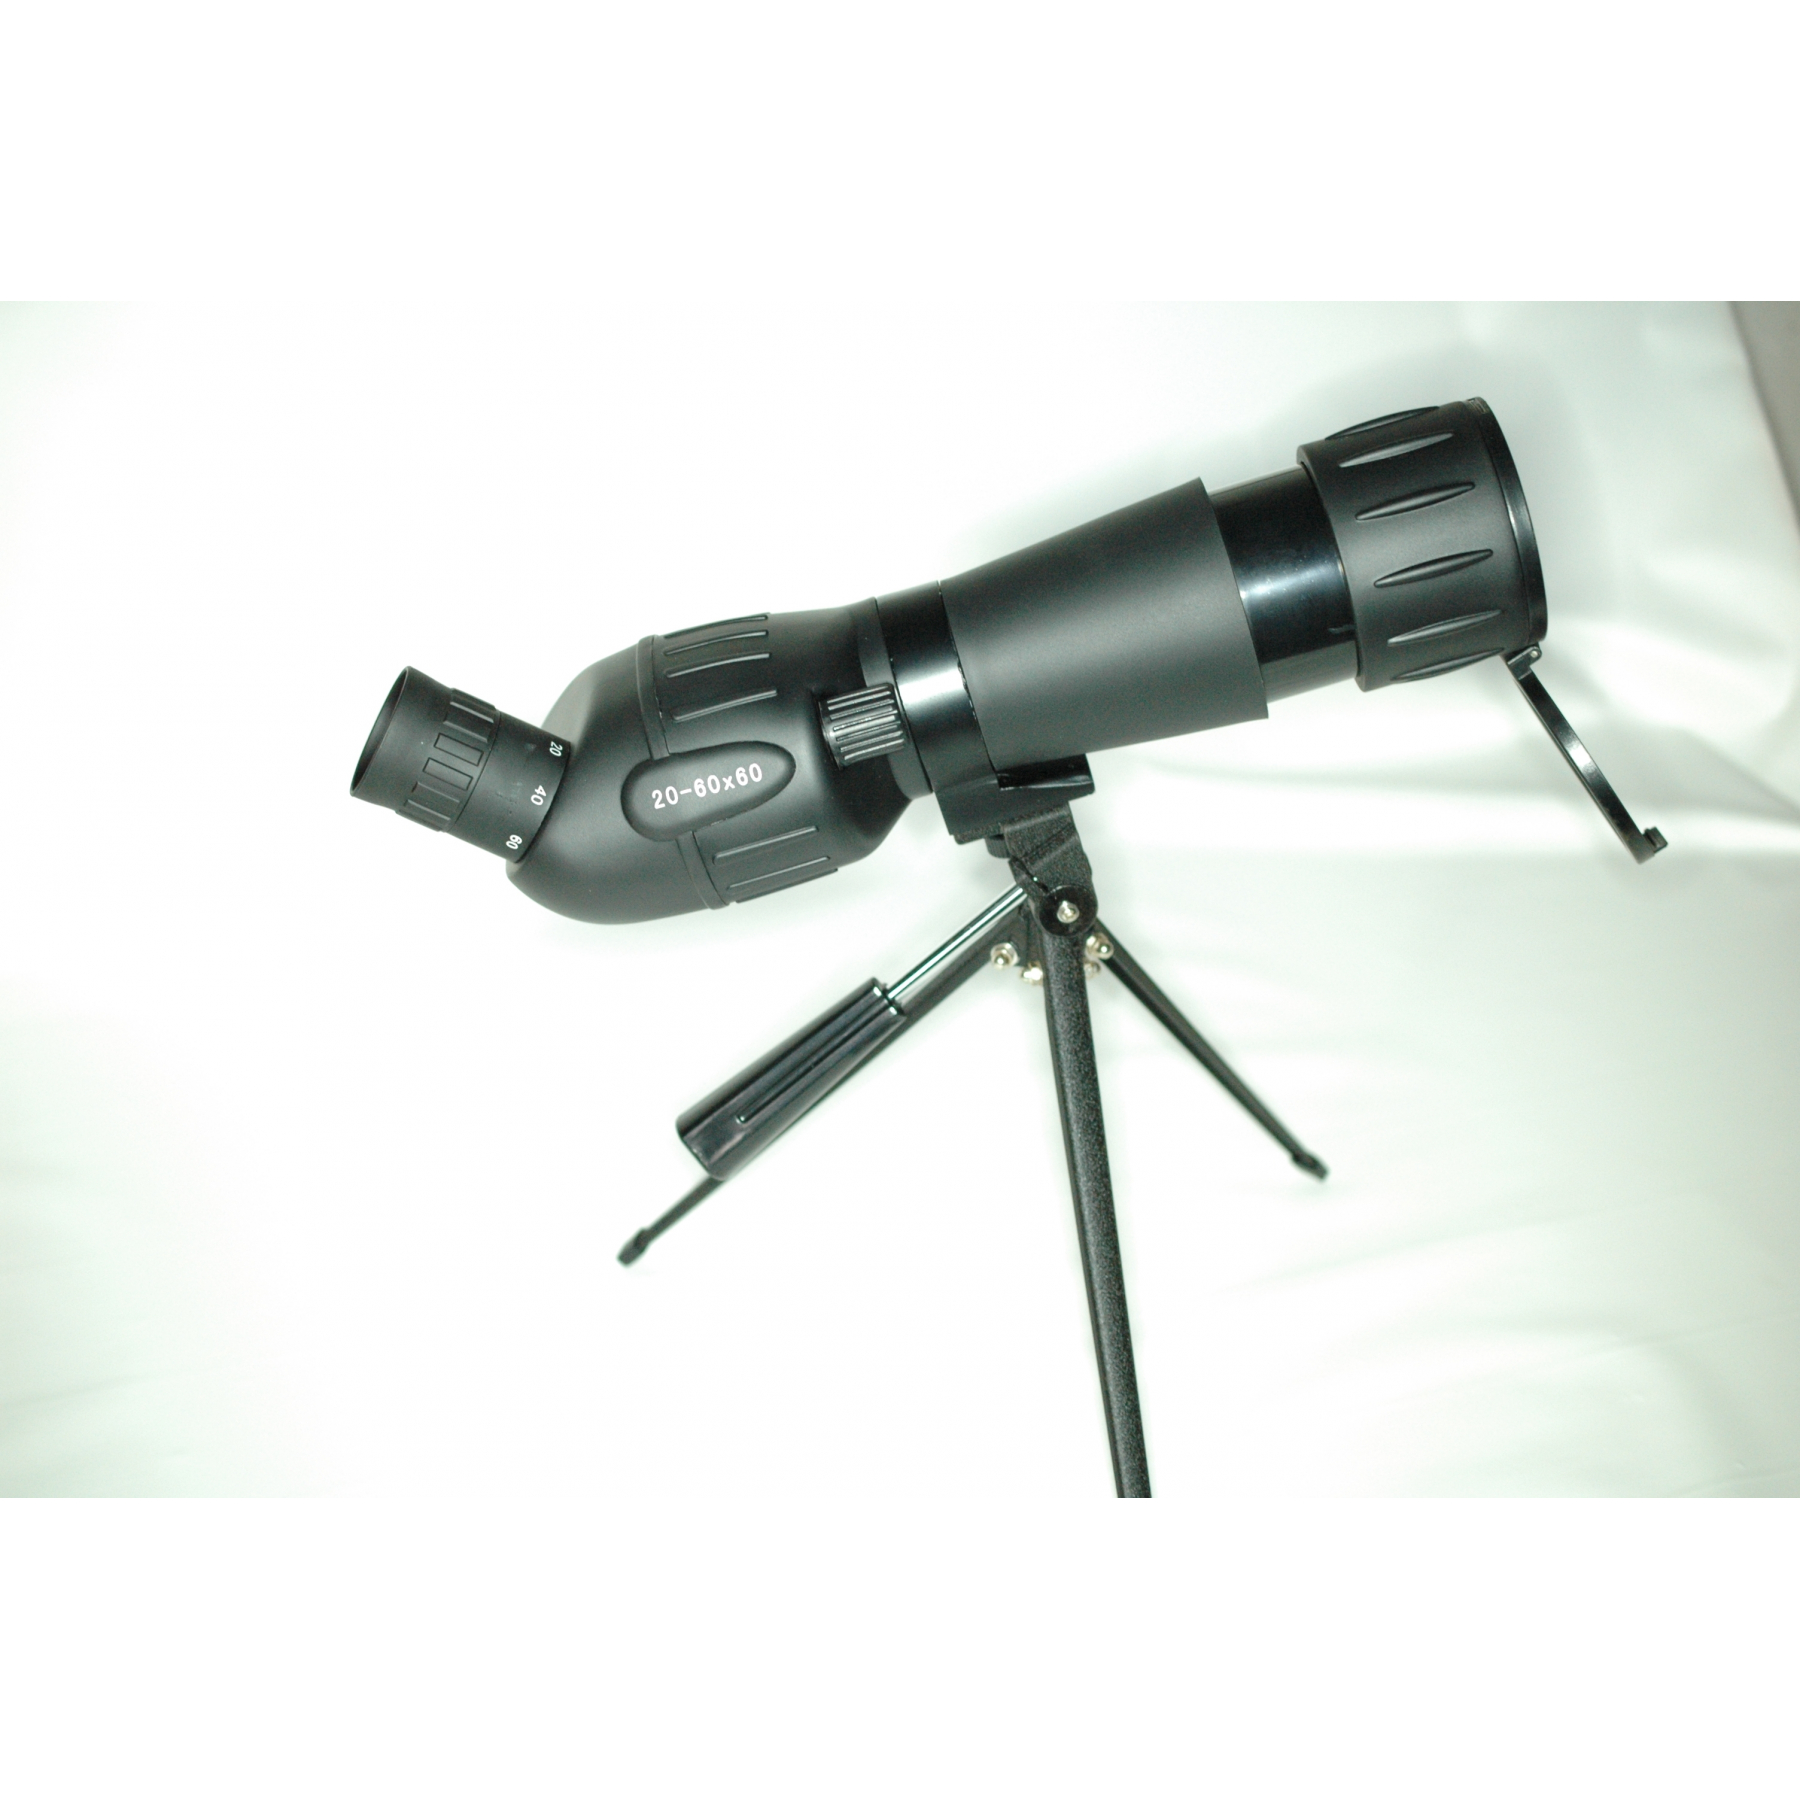 AEON OPTICS SPOTTING SCOPES 20-60X60